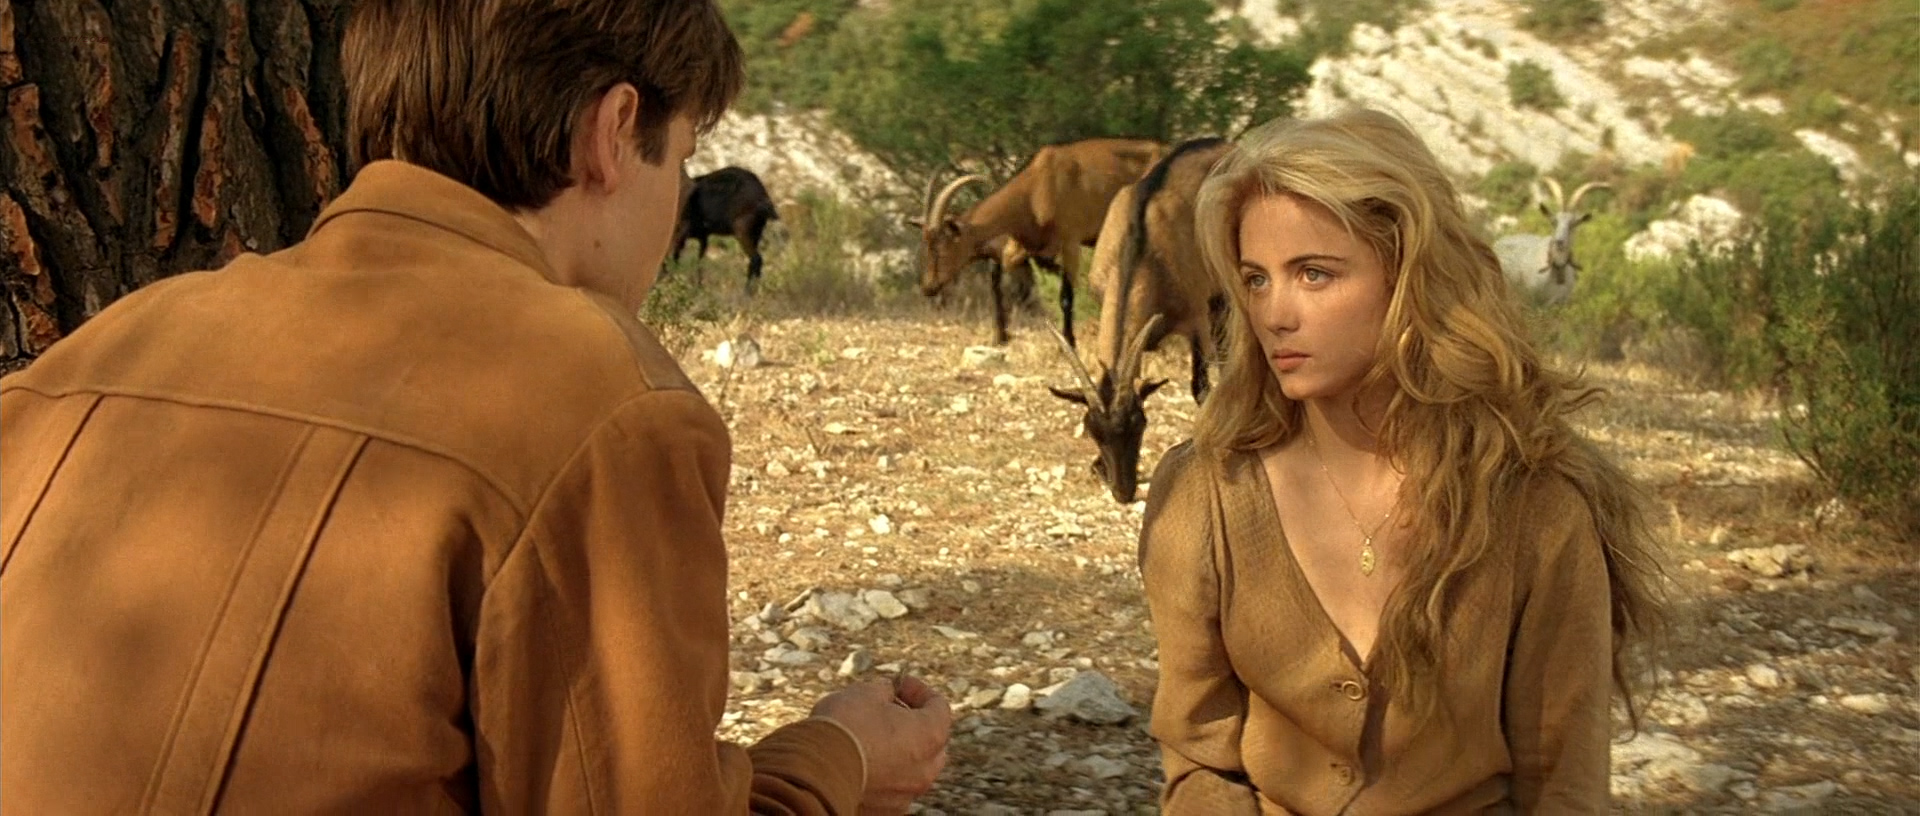 Emmanuelle Béart nude full frontal bush and tits - Manon des sources (FR-1986) hd1080p BluRay (22)